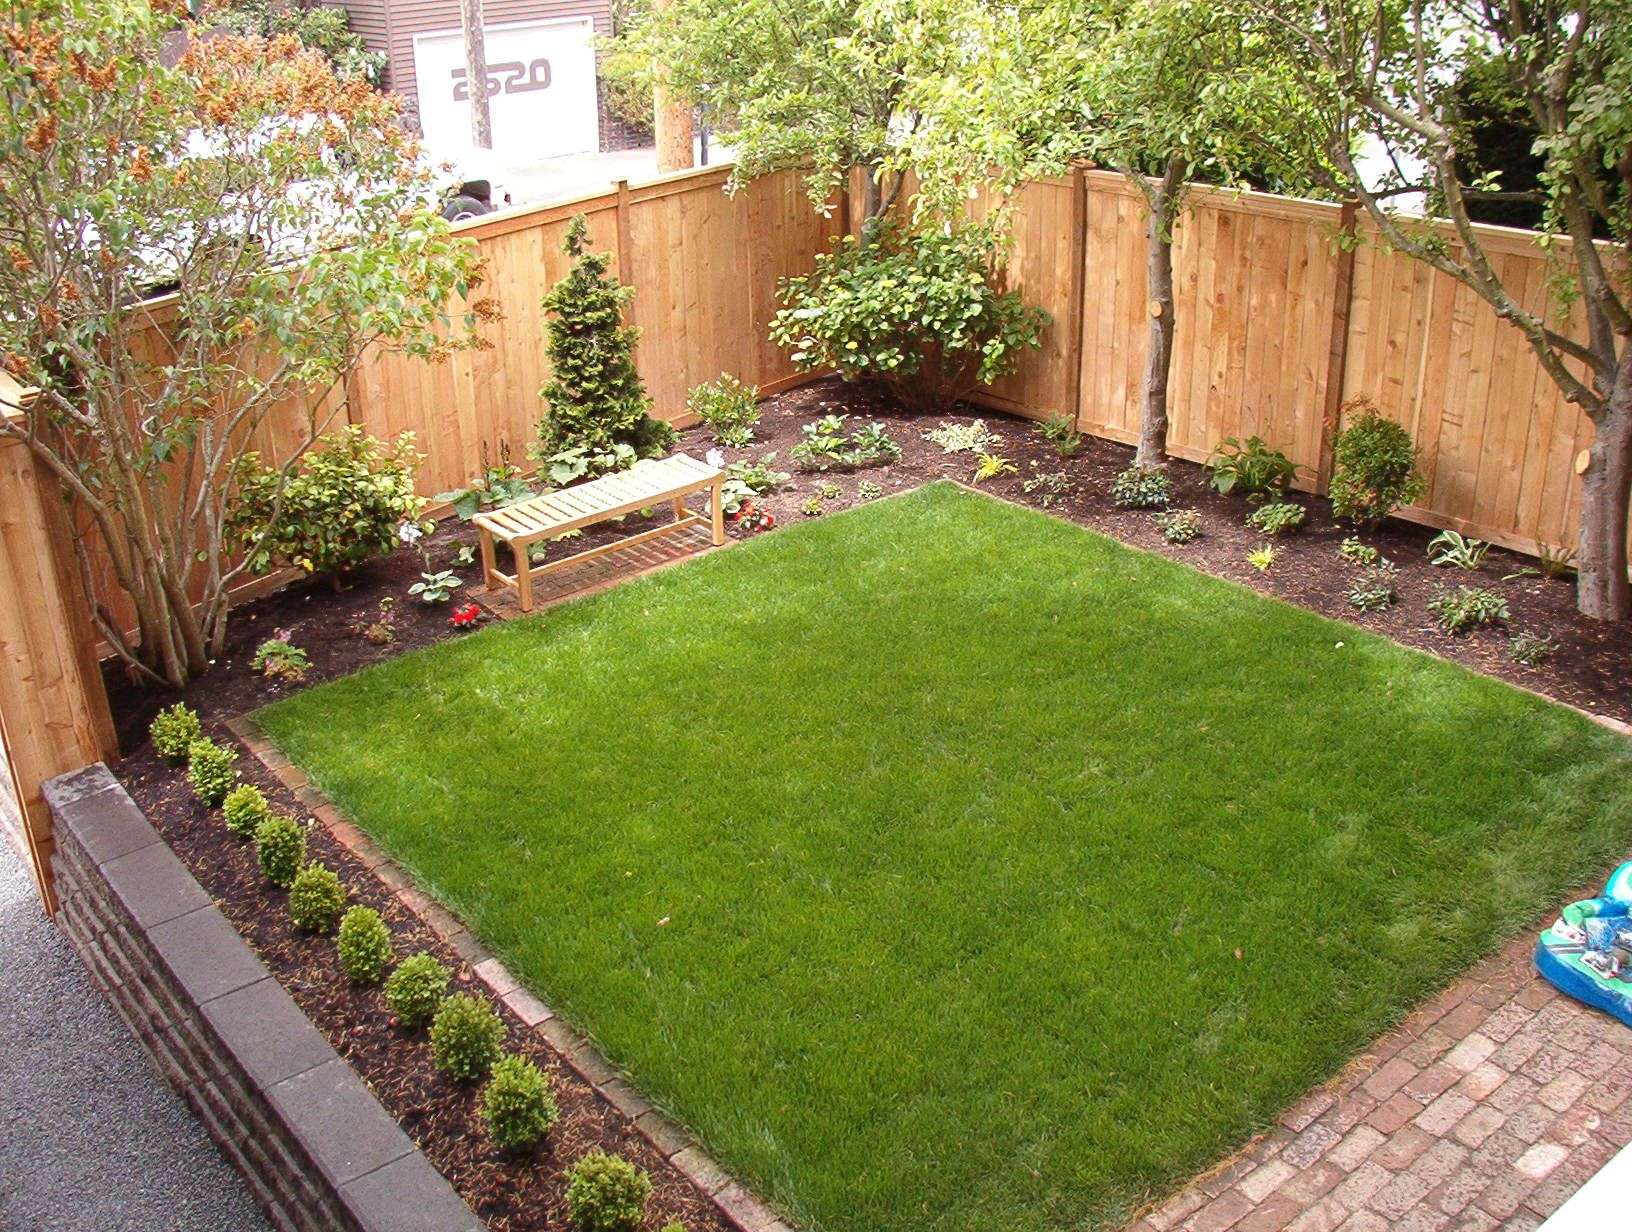 Sod lawn for children to play on landscape ideas for Outdoor landscaping ideas